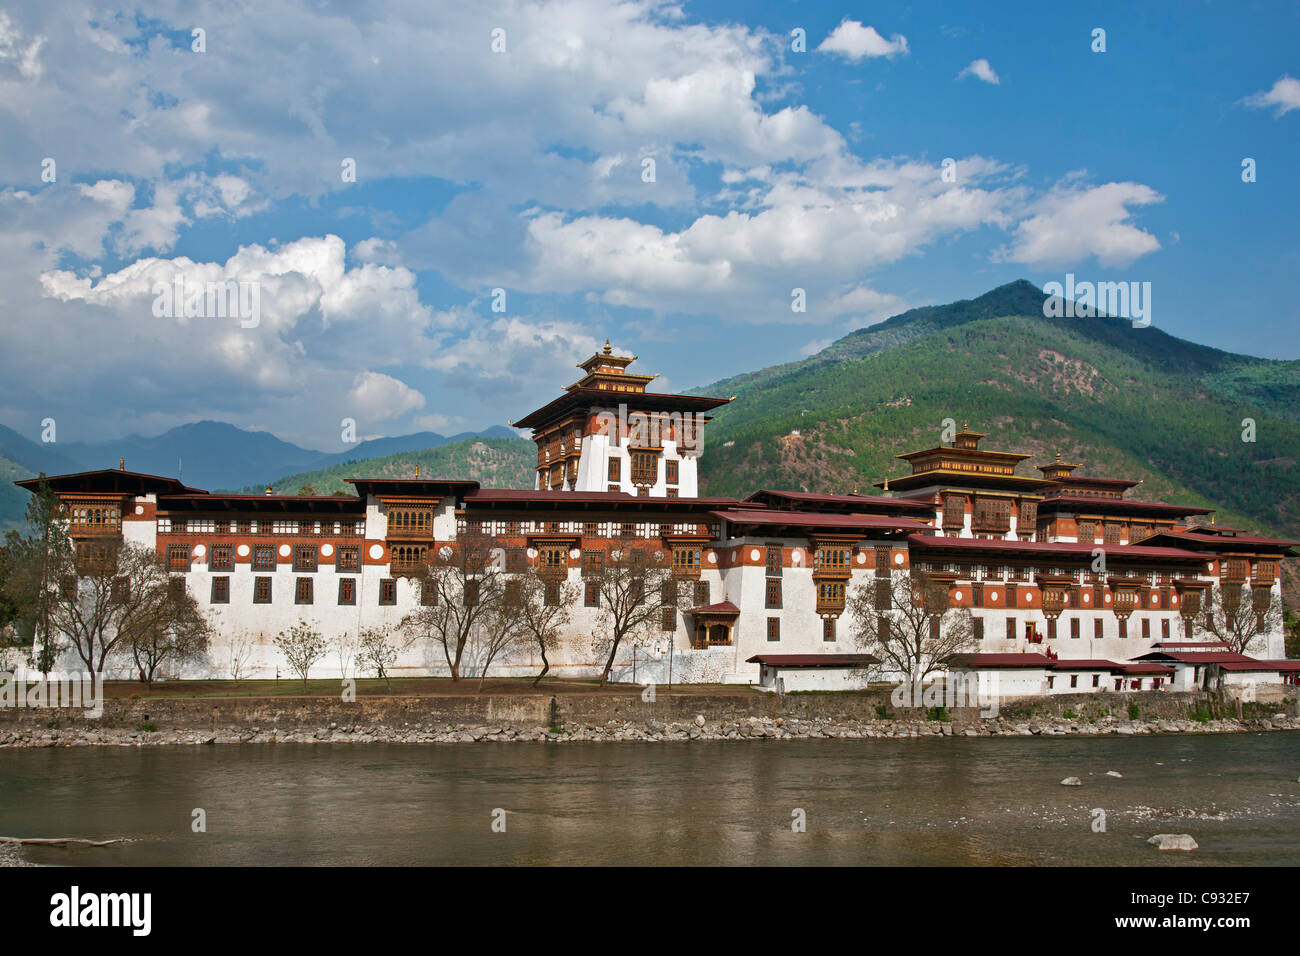 The 17th century Punakha Dzong is the second oldest and second largest dzong in Bhutan. - Stock Image